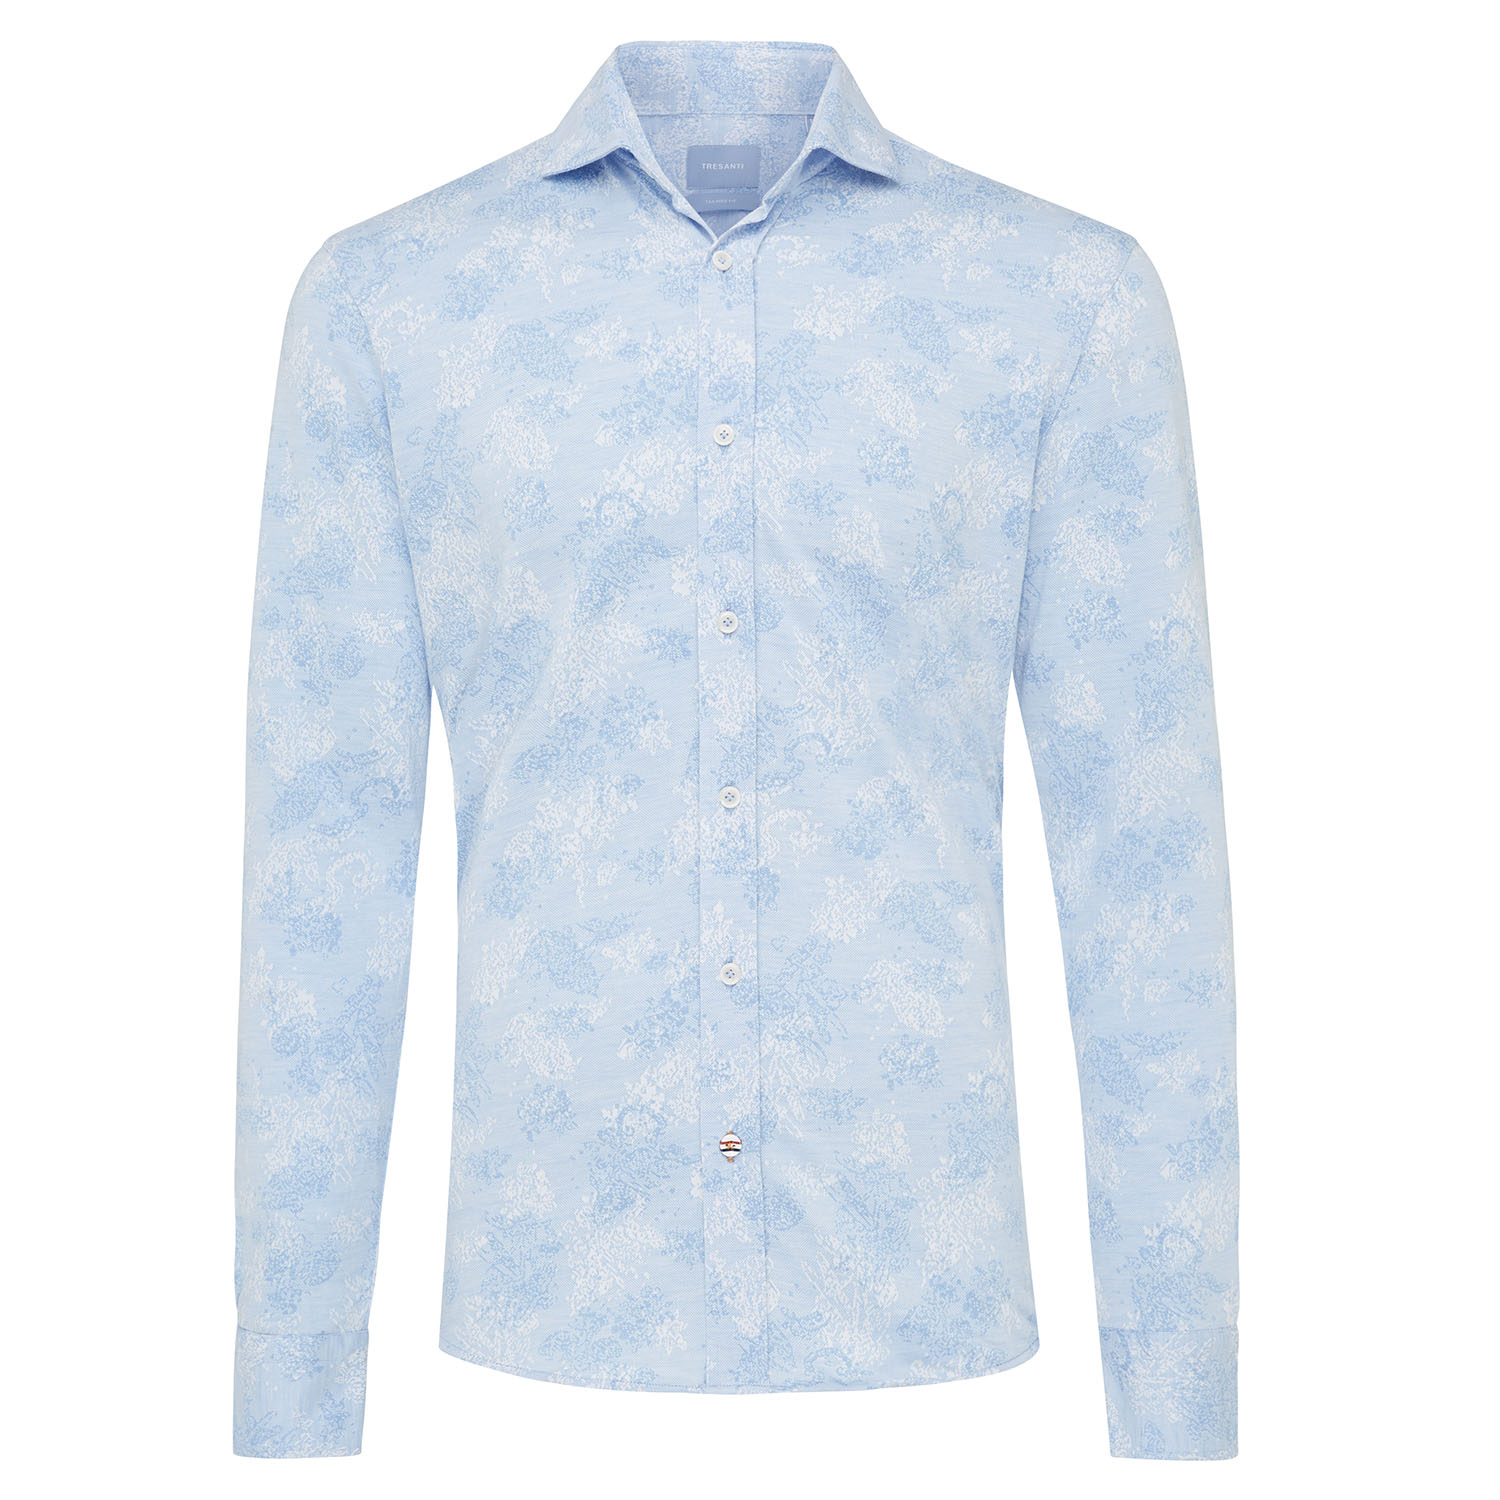 Melle | Knitted shirt light blue